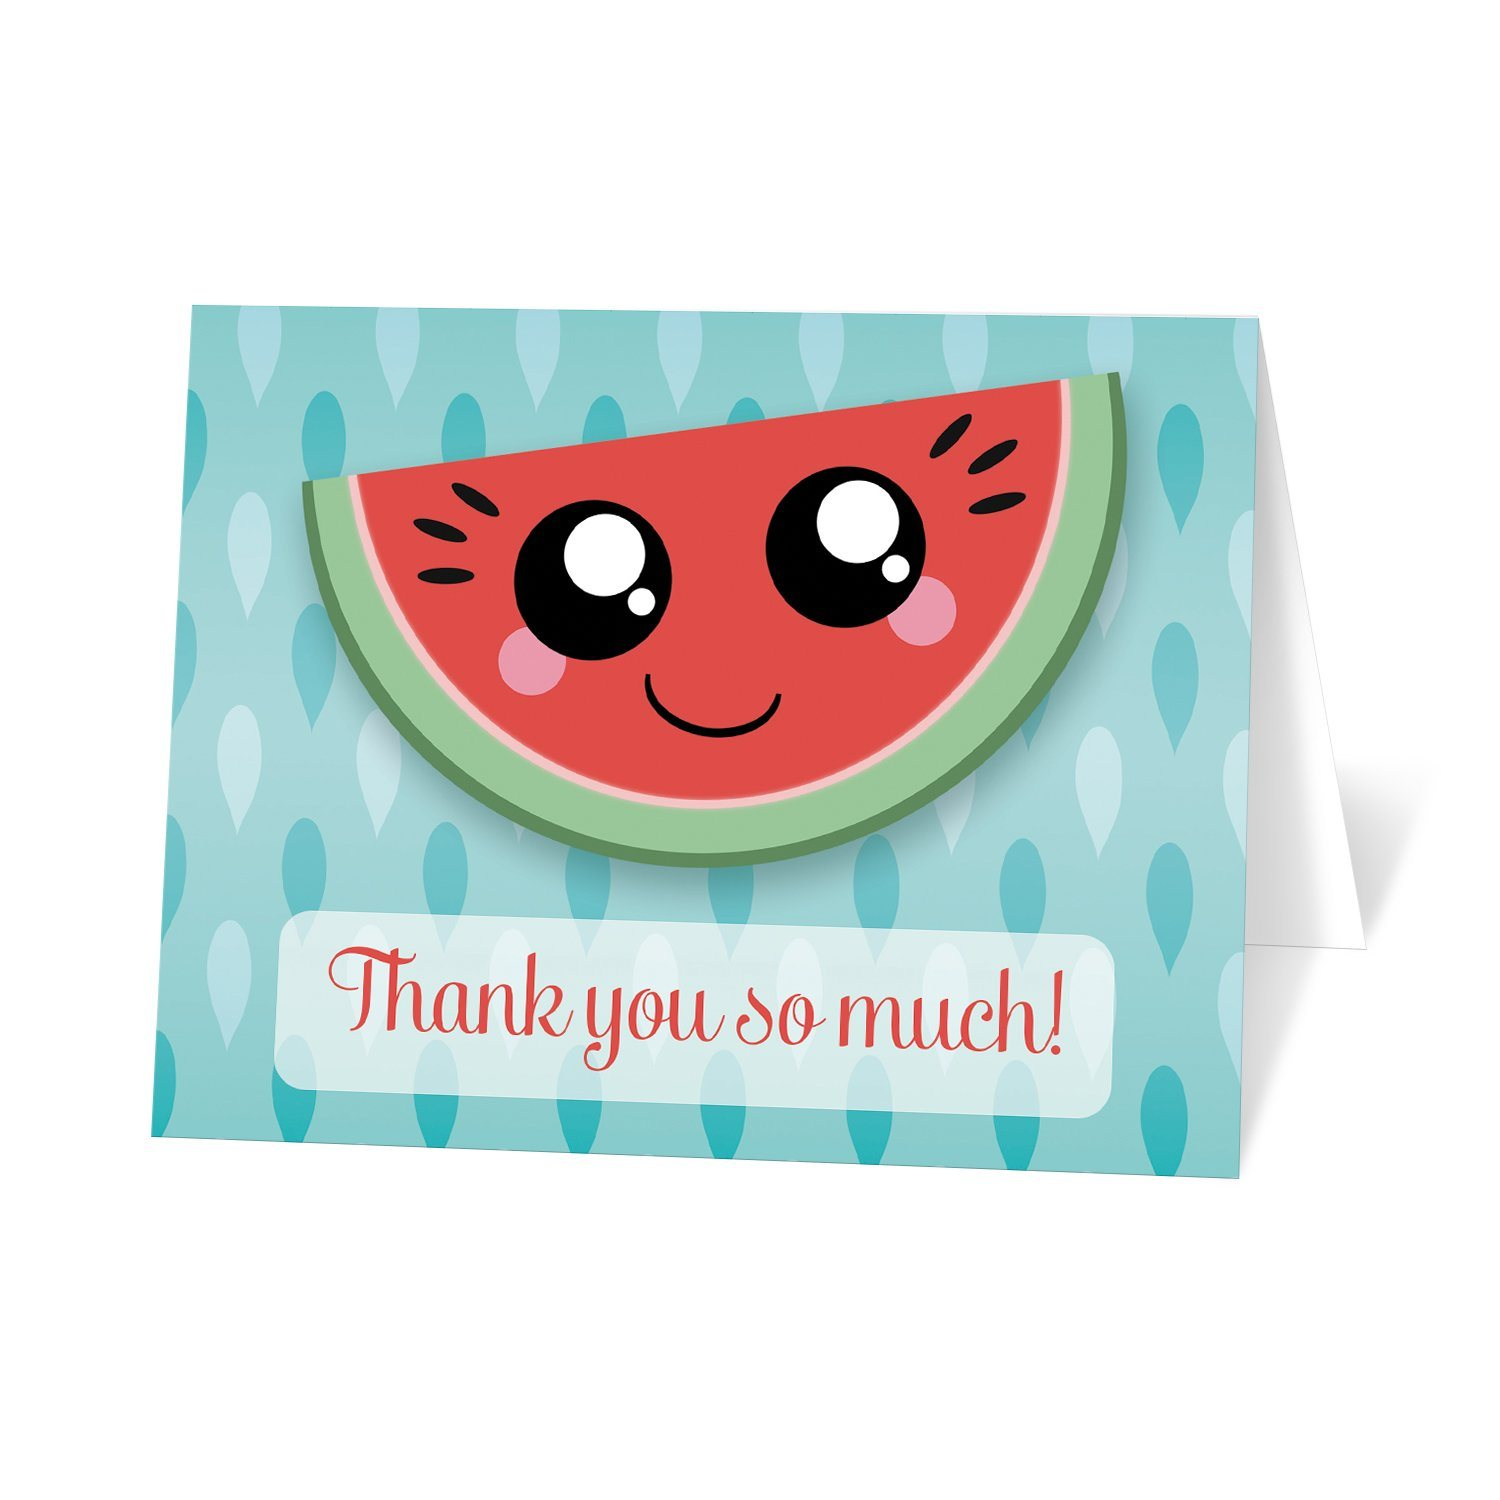 Smiling Watermelon Slice - Watermelon Thank You Cards at Artistically Invited